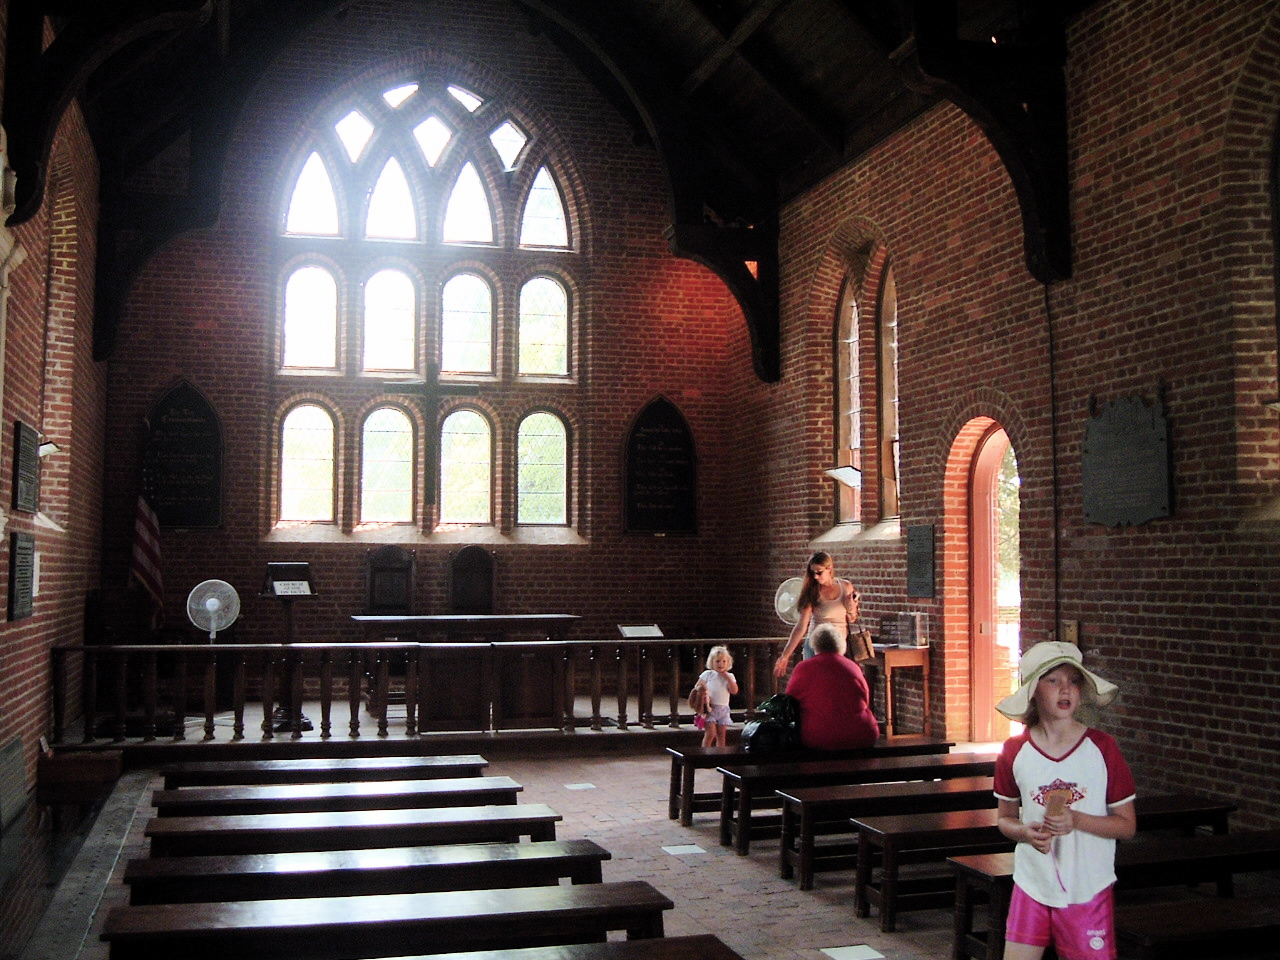 The inside of the current Jamestown Church, upon the general site of the original and the location where the first law in America was made. The church encompasses the only remains of a Jamestown structure existing from the time of its settlement and habitation. Although the main body of the church is a 1906 reconstruction, the tower is remaining original feature, dating to ca. 1650. The tower is slightly over 18 feet square and the walls are three feet thick at the base. Originally the tower was about 46 feet high (ten feet higher than the ruins) and was crowned with a wooden roof and belfry. It had two upper floors as you can see from the large beam notches on the inside. Six small openings at the top permitted light to enter and the sound of the bell or bells to carry across river and town. Photo taken on July 1, 2006.